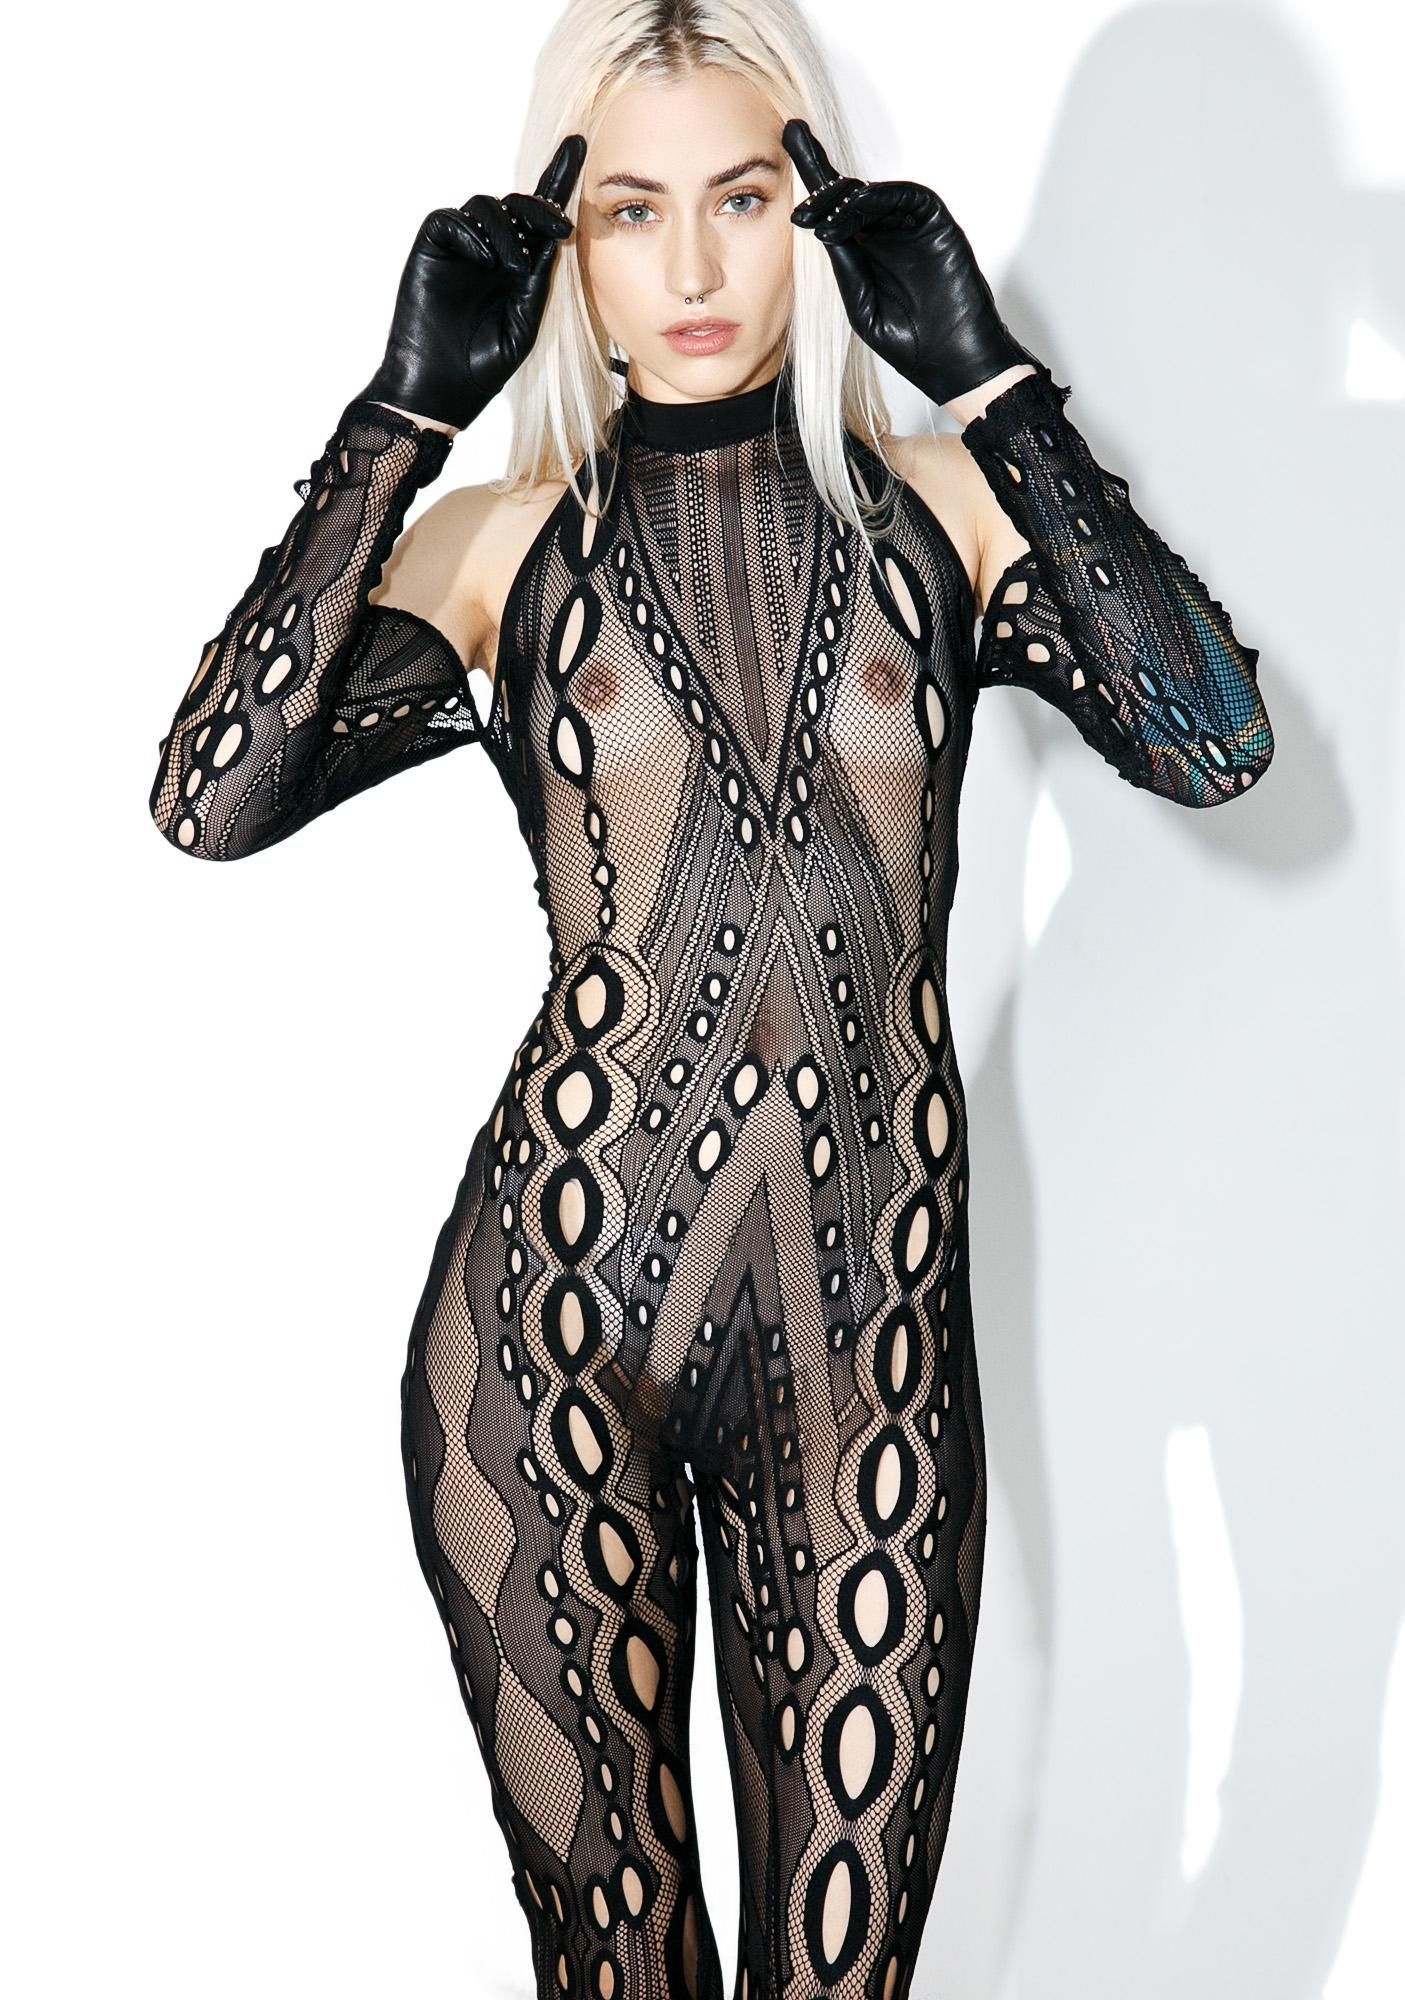 10beda1d5be54 Syncope Fishnet Bodystocking is gunna leave 'em totally stunned, babe! This  amazing bodystocking